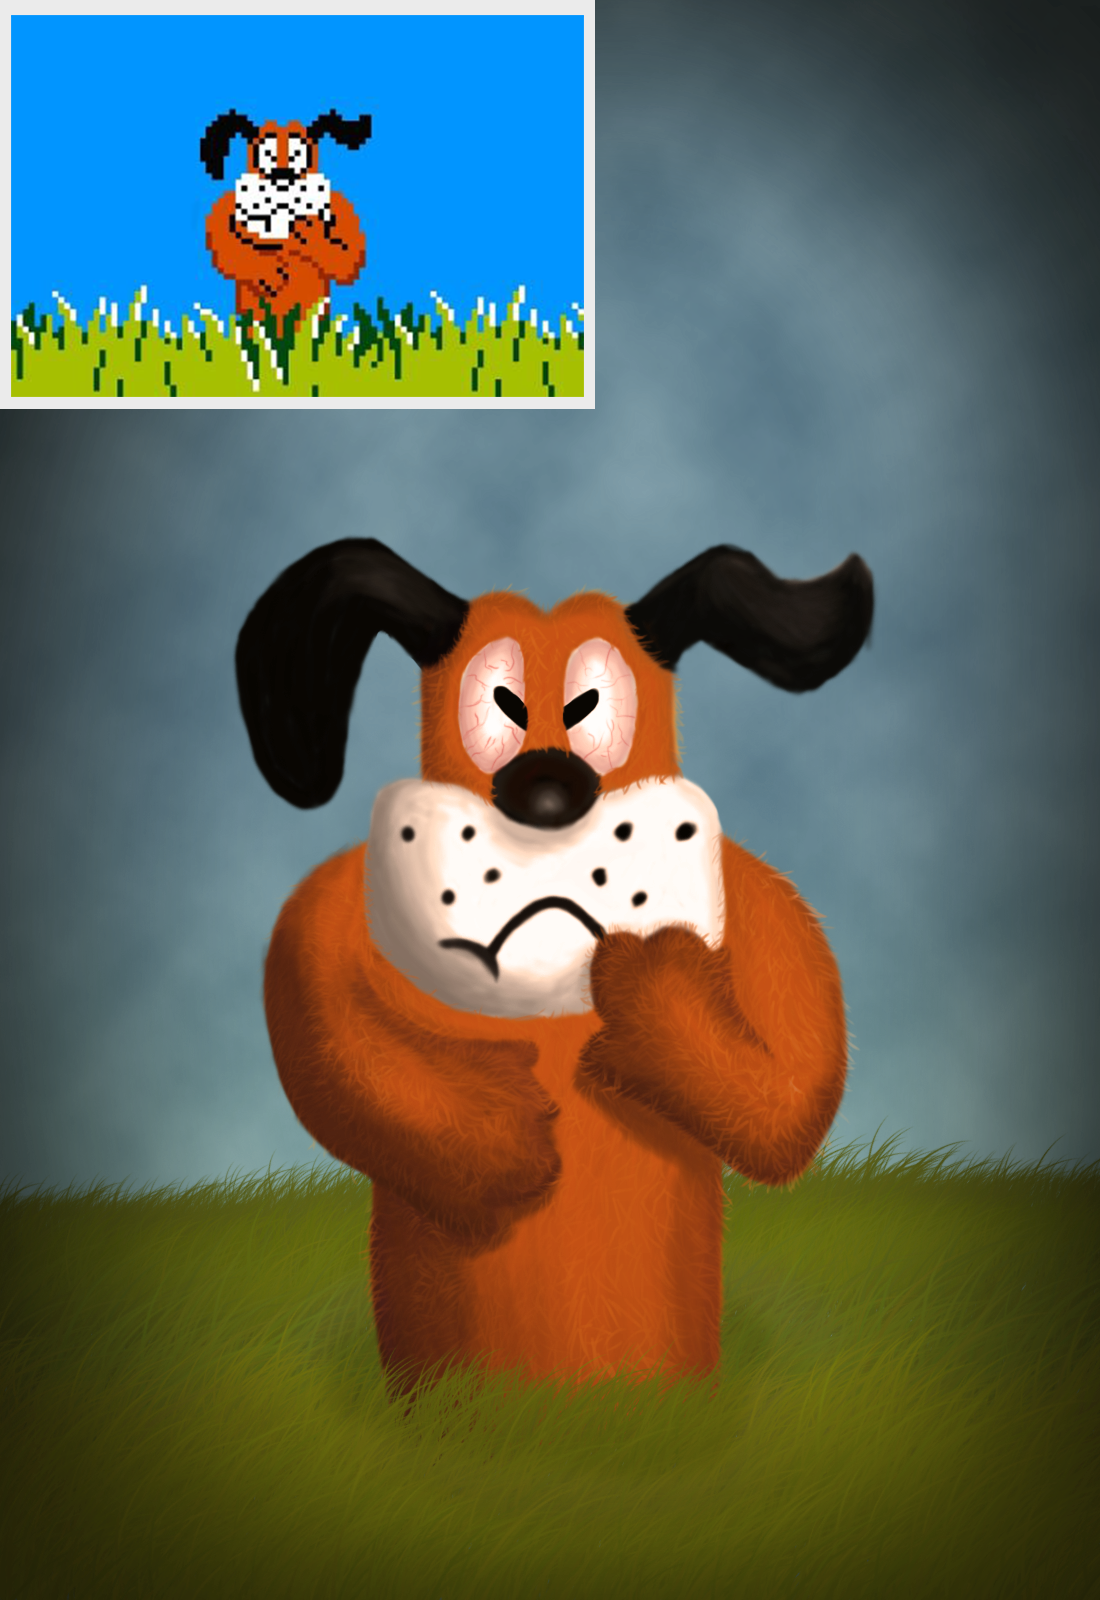 """A Dog From A Game """"Duck Hunt"""""""